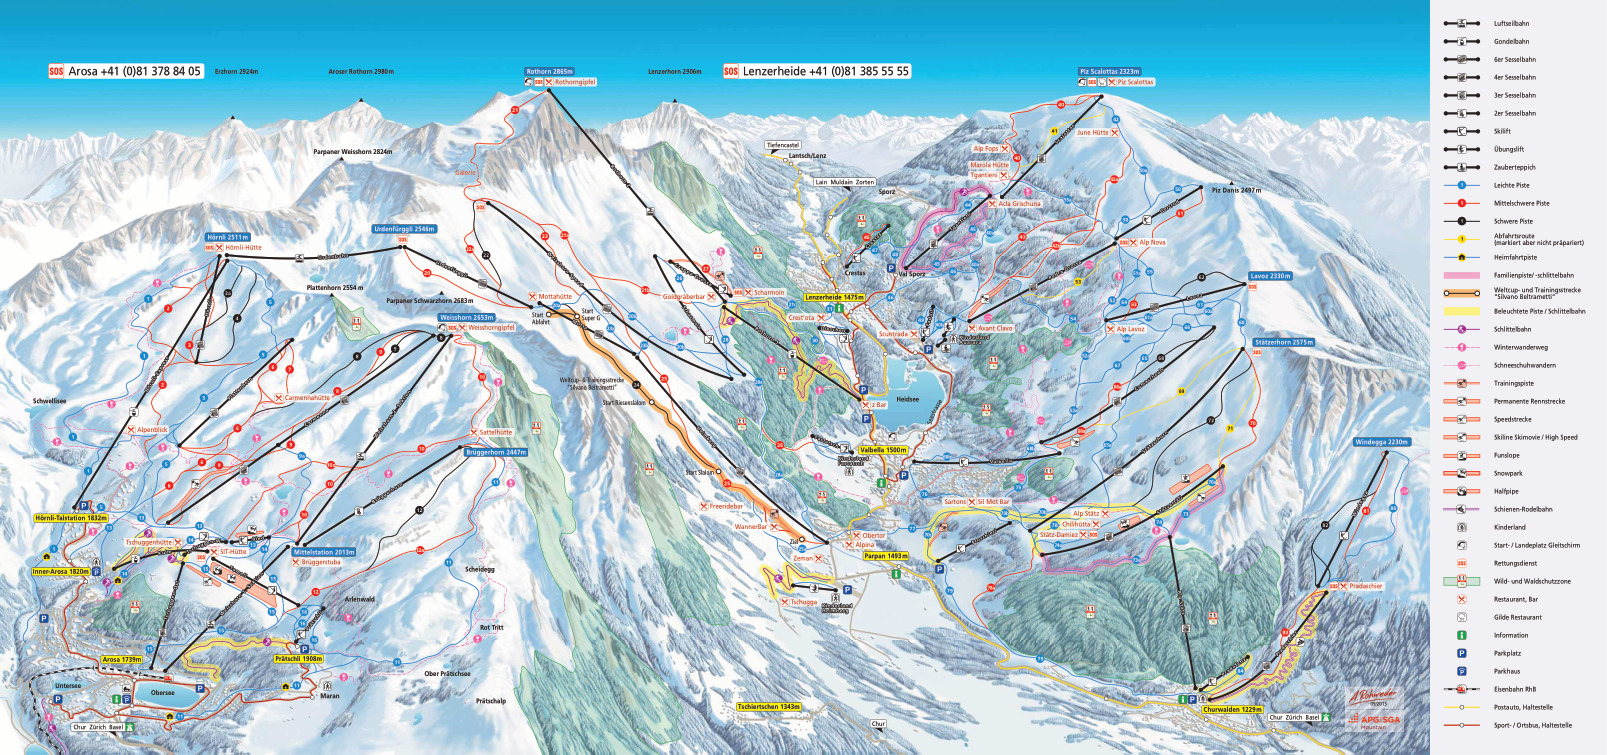 1381828842jpg_render Google Data Maps on google maps water, google voice, google maps interface, web mapping, google maps geolocation, google maps graphics, google mars, google maps findings, yahoo! maps, google street view, google maps technology, google maps background, google maps ui, google search, google moon, google maps controls, google maps template, google maps process, bing maps, google maps street view, google map maker, google maps messages, google docs, google maps web, google goggles, google chrome, route planning software, google latitude, google earth, google maps books, satellite map images with missing or unclear data, google maps paper, google maps layout, google maps preview, google sky, google maps market share, google translate, google maps visual,